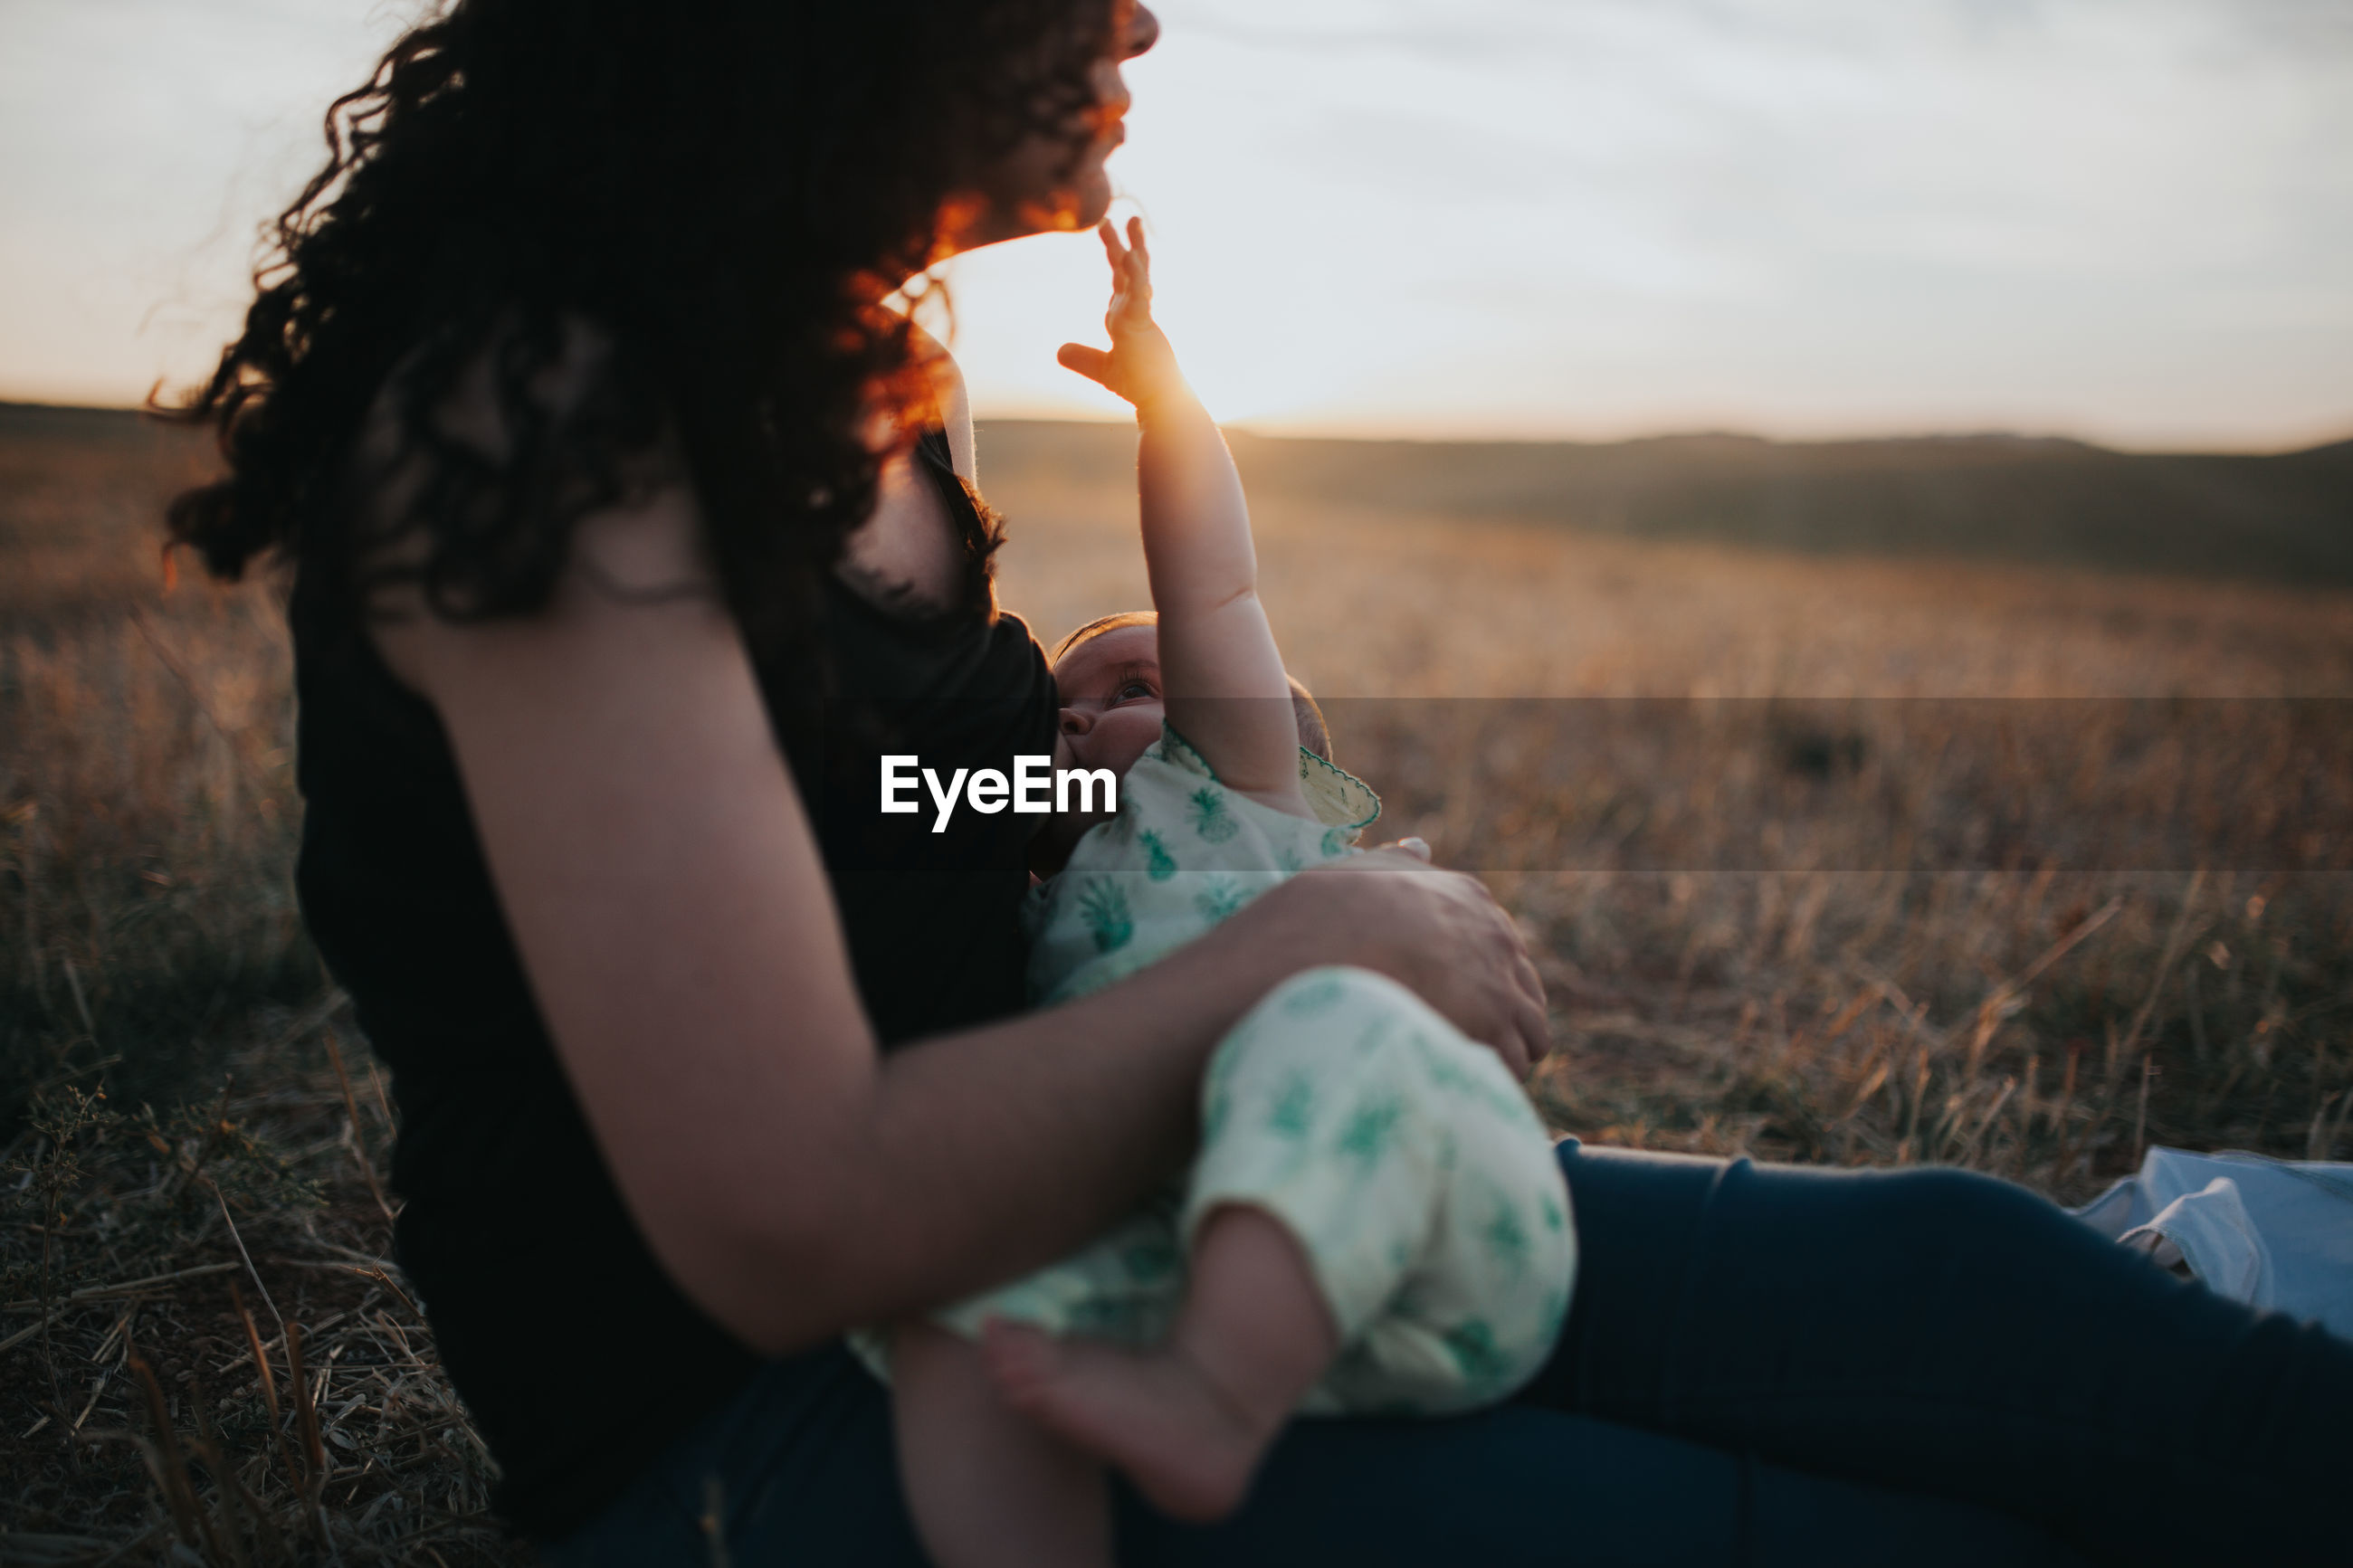 Side view of mother breastfeeding baby while sitting on field against sky during sunset